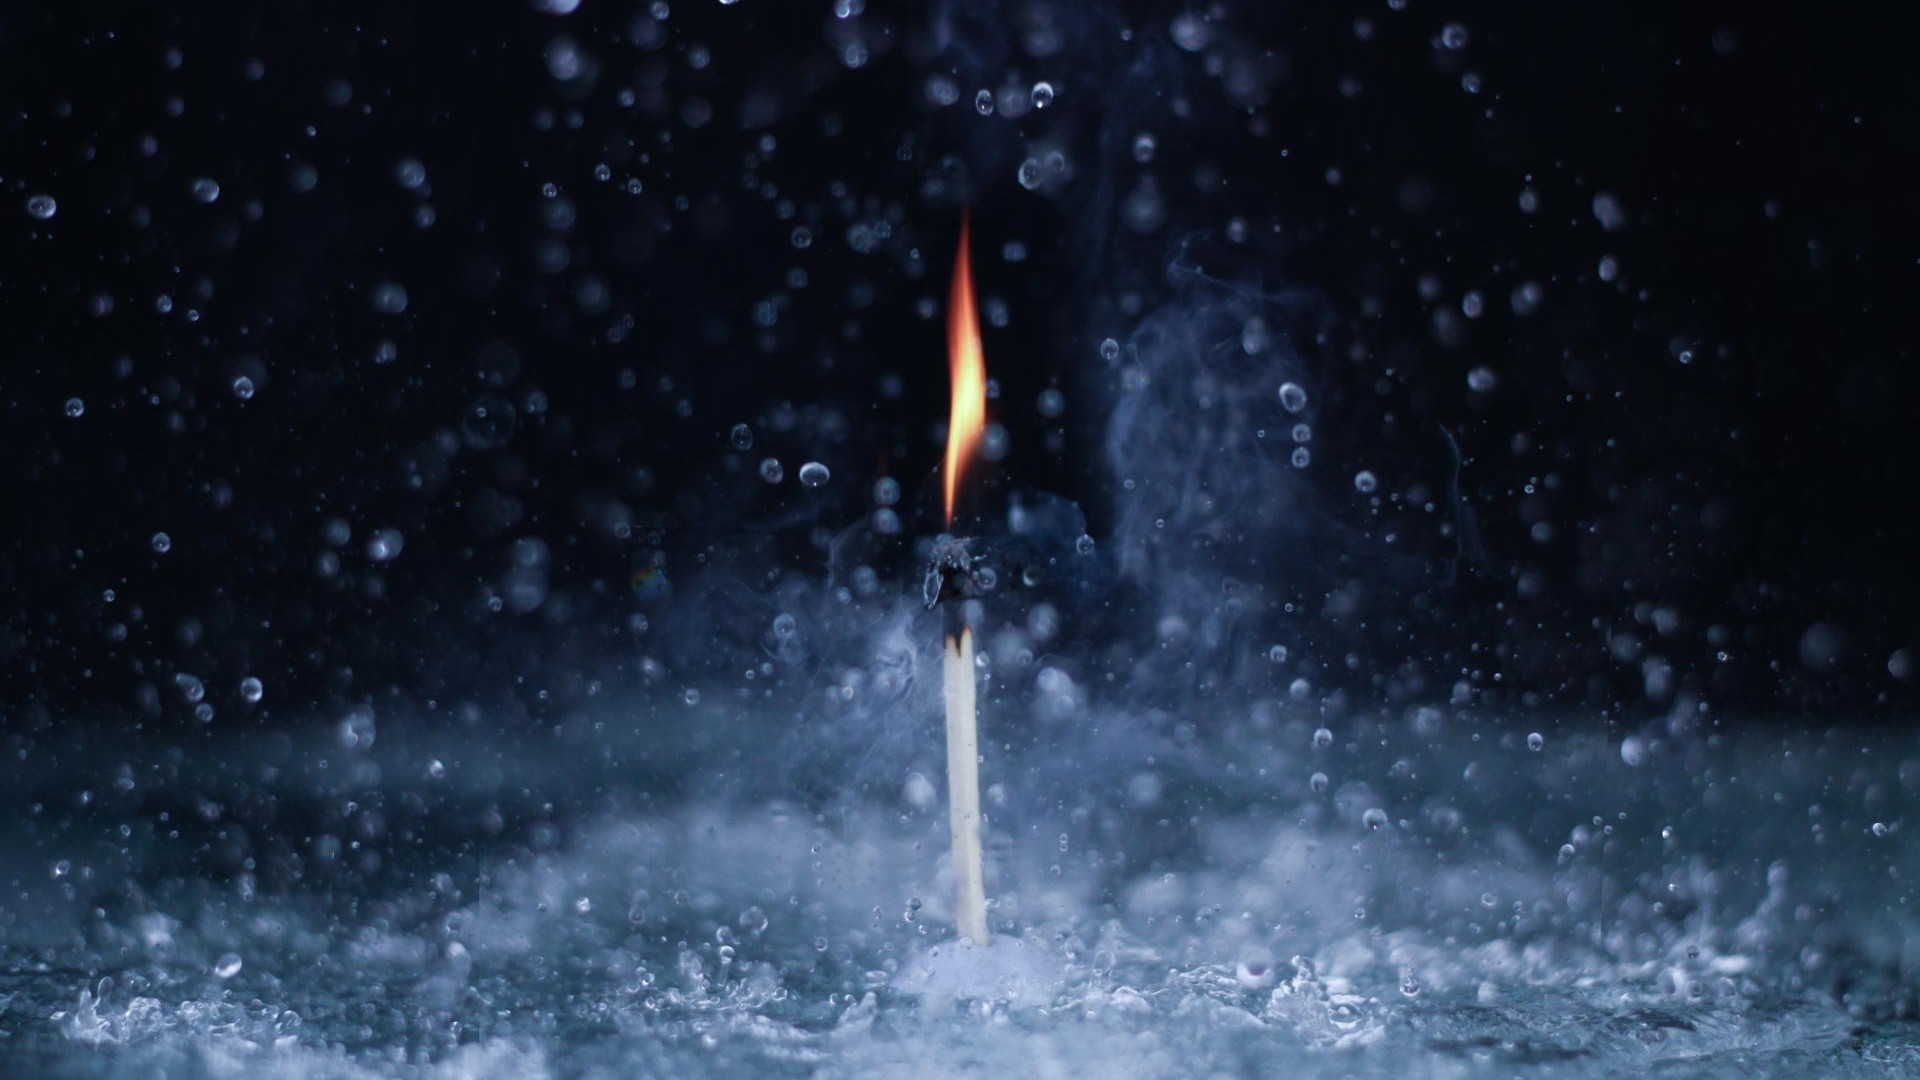 Matchstick on Fire in RainDrops - Top 10 HD Raindrop Wallpapers for Your Desktop